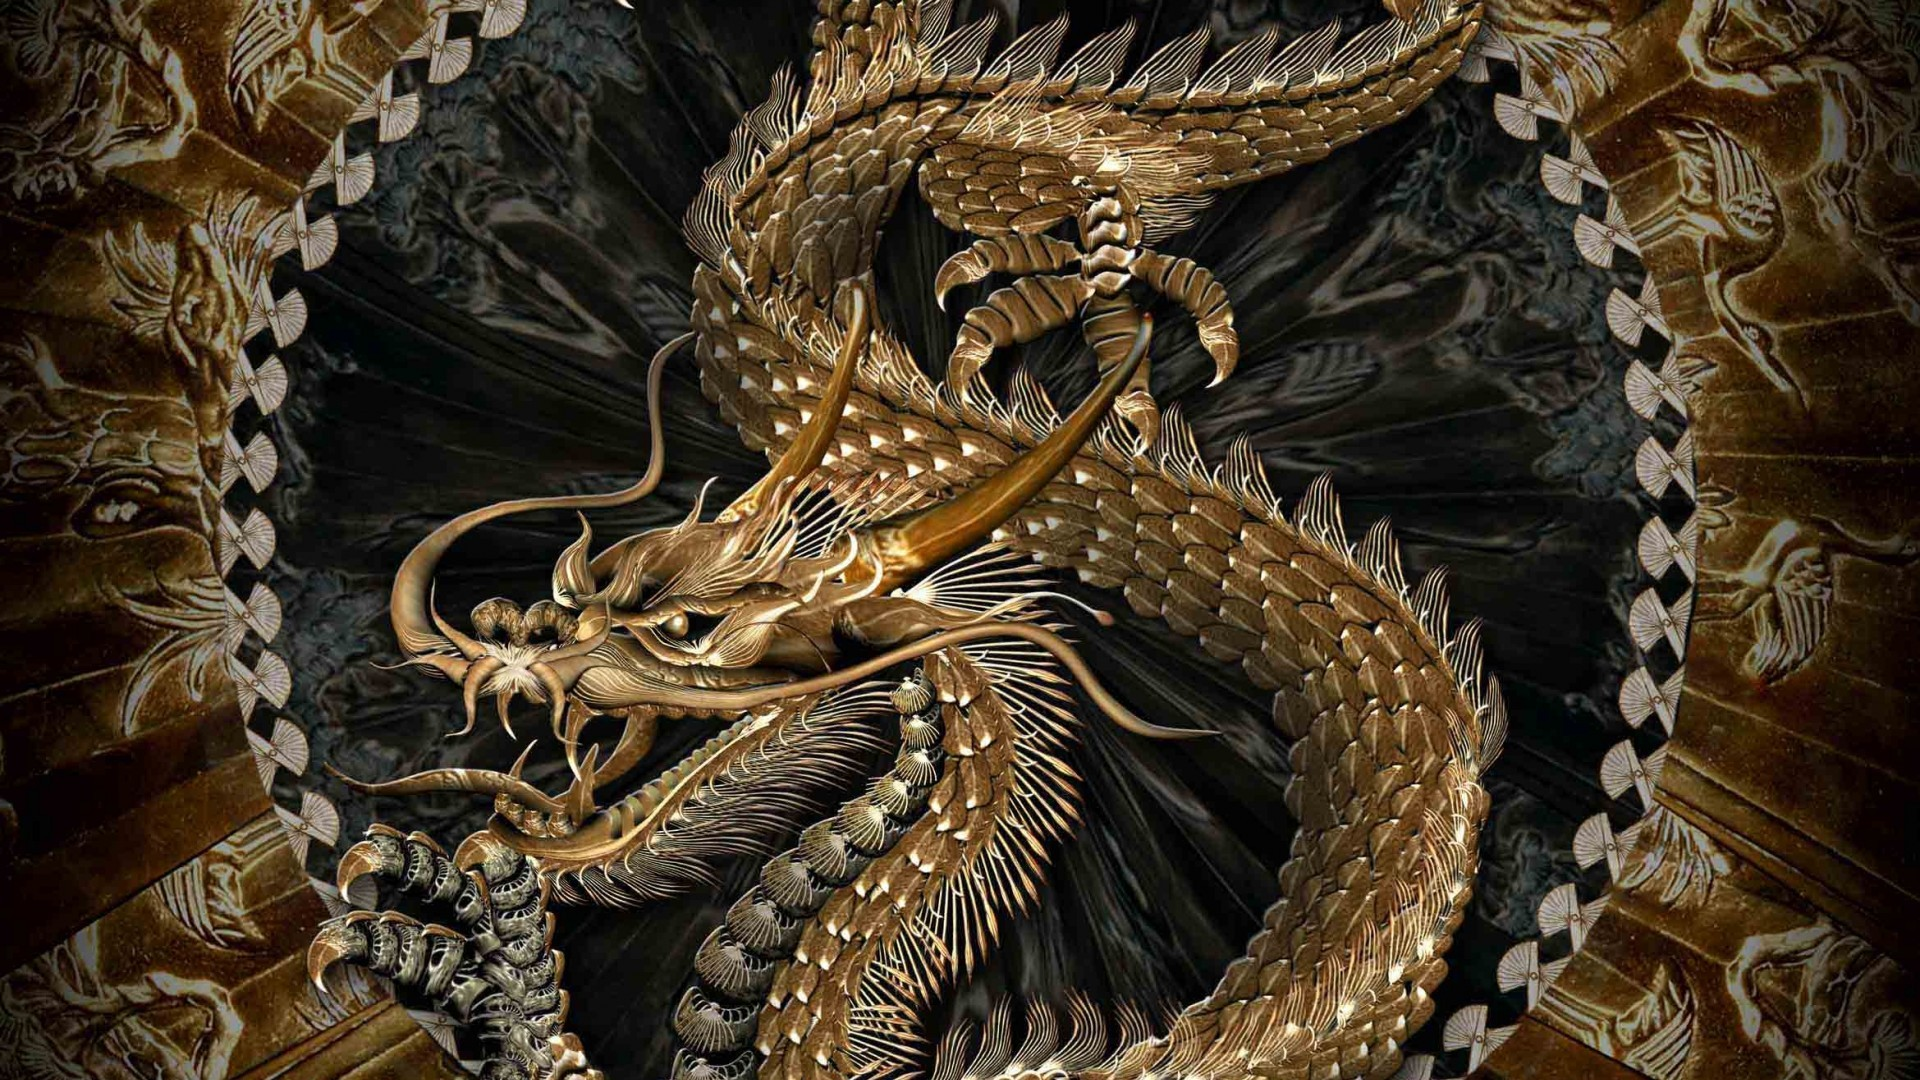 Dragon HD Wallpapers 1080p  WallpaperSafari